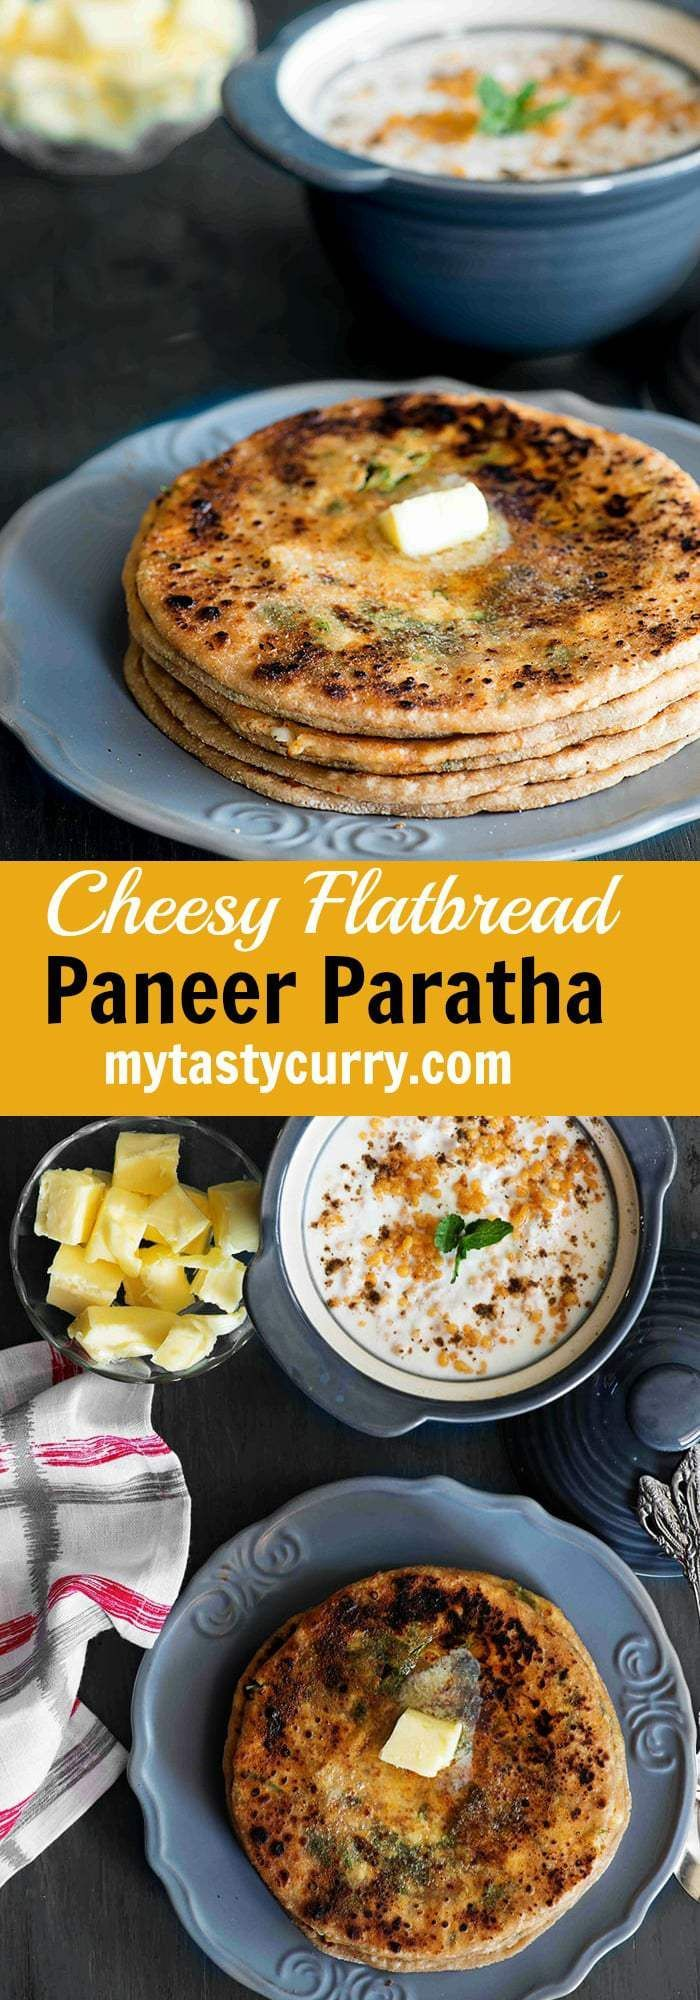 Paneer paratha is simple Indian flat bread with the stuffing of delicious mix of grated paneer and spices in whole wheat dough, which is then shallow fried to golden perfection and served hot. Learn how to make perfectly spicy and crispy punjabi style Paneer paratha with this recipe